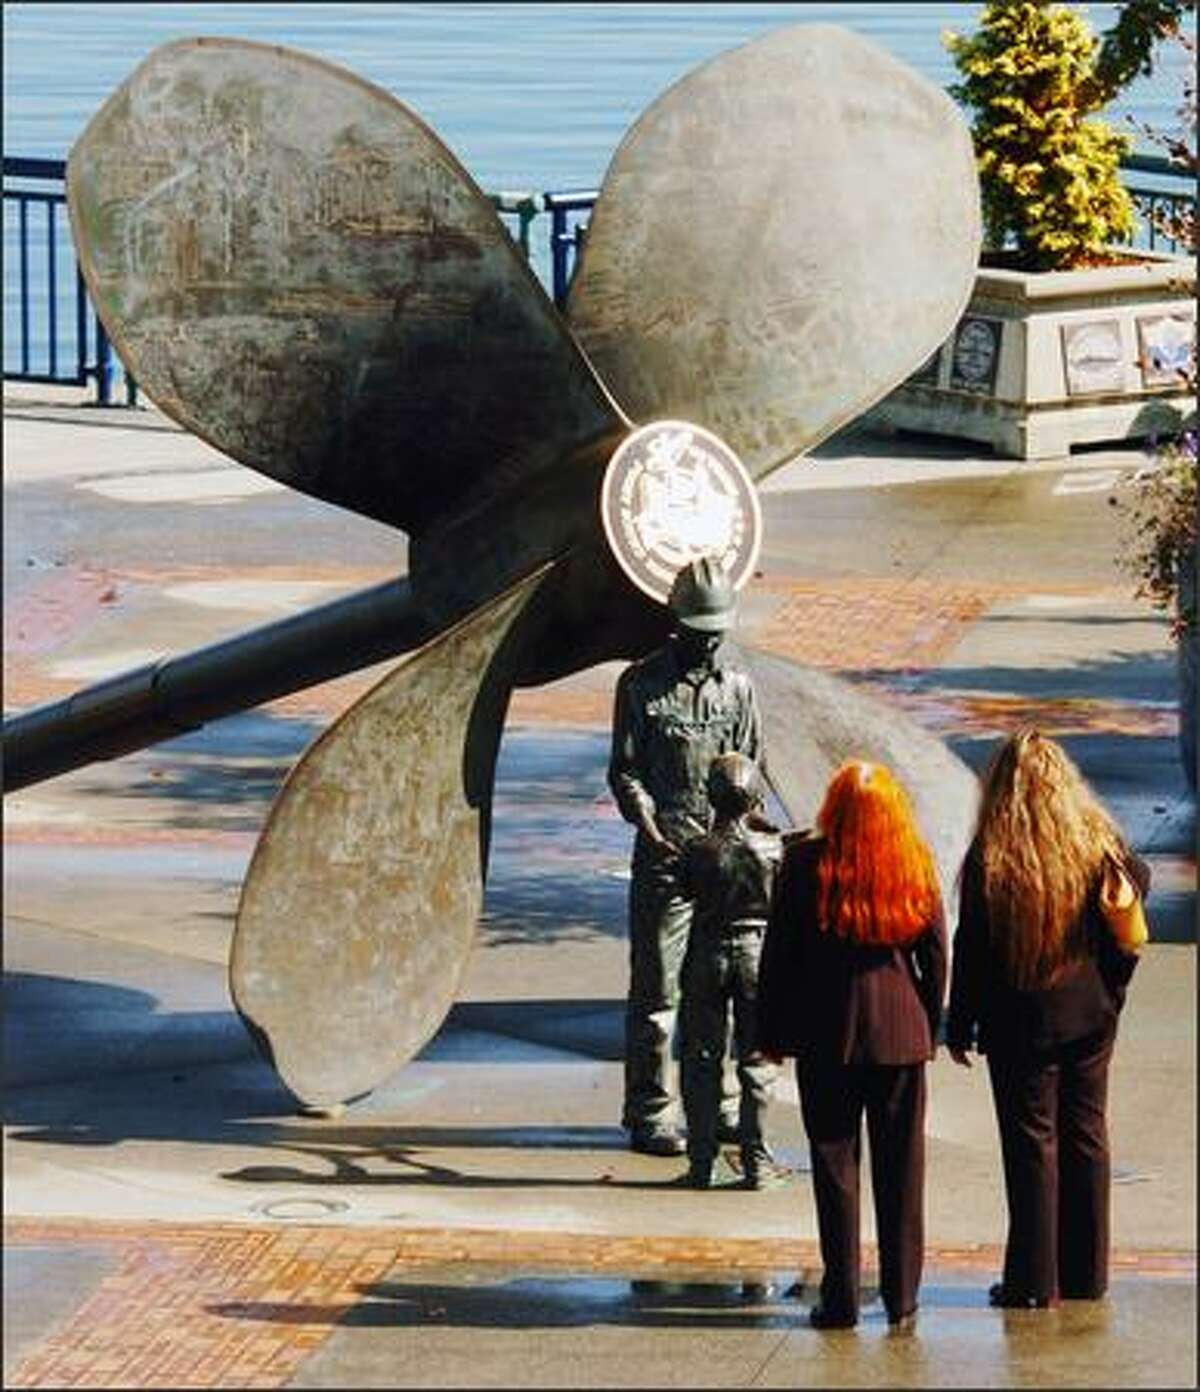 A waterfront sculpture in Bremerton pays tribute to the heavy maritime influence in the area.